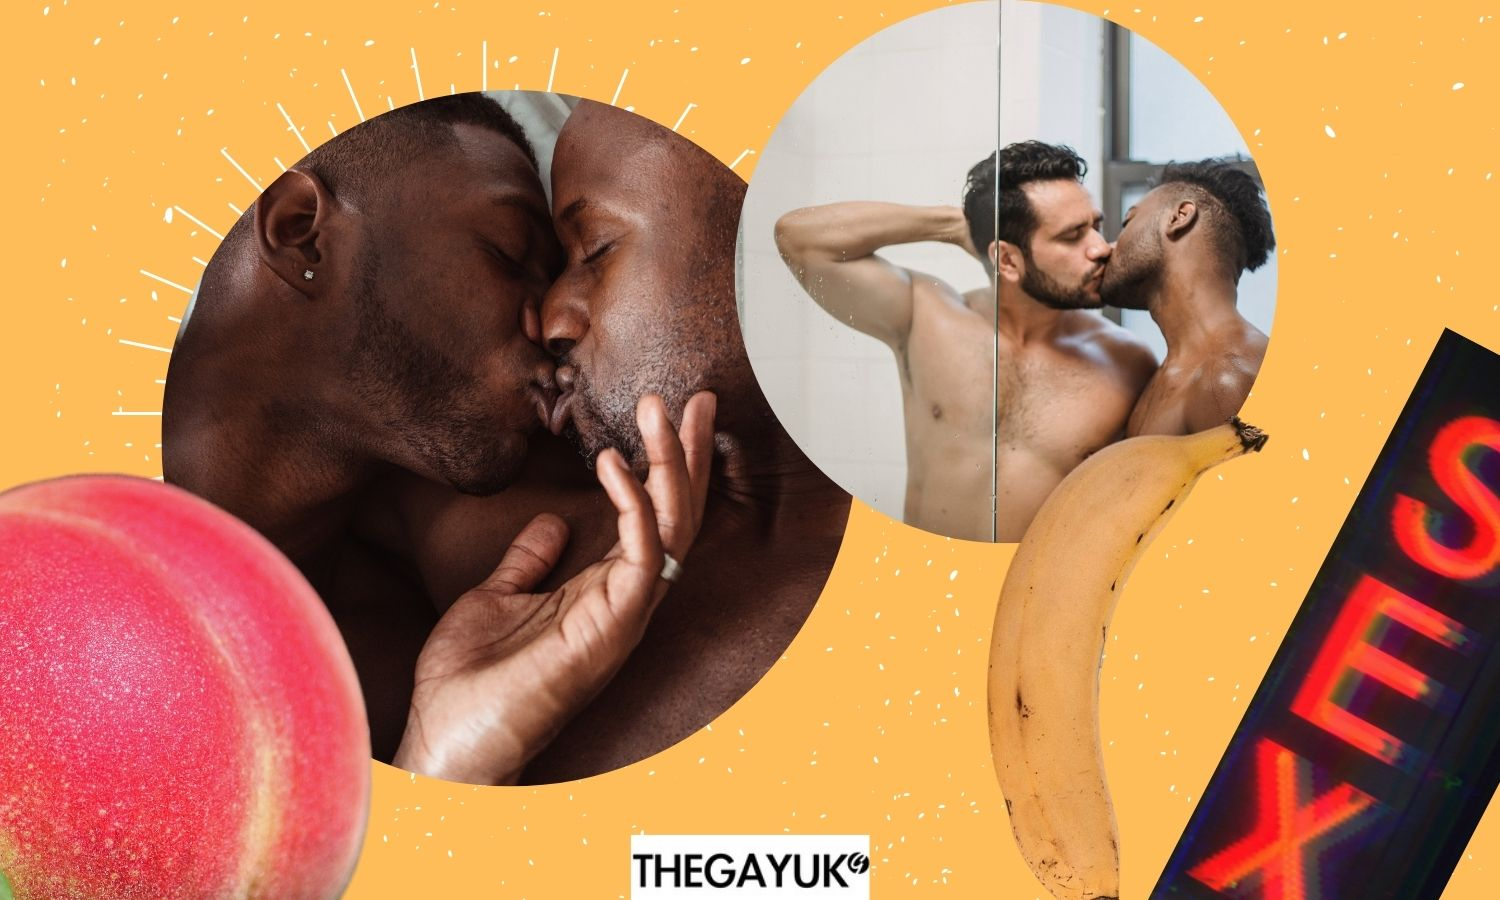 Places where gay men have said they've had sex